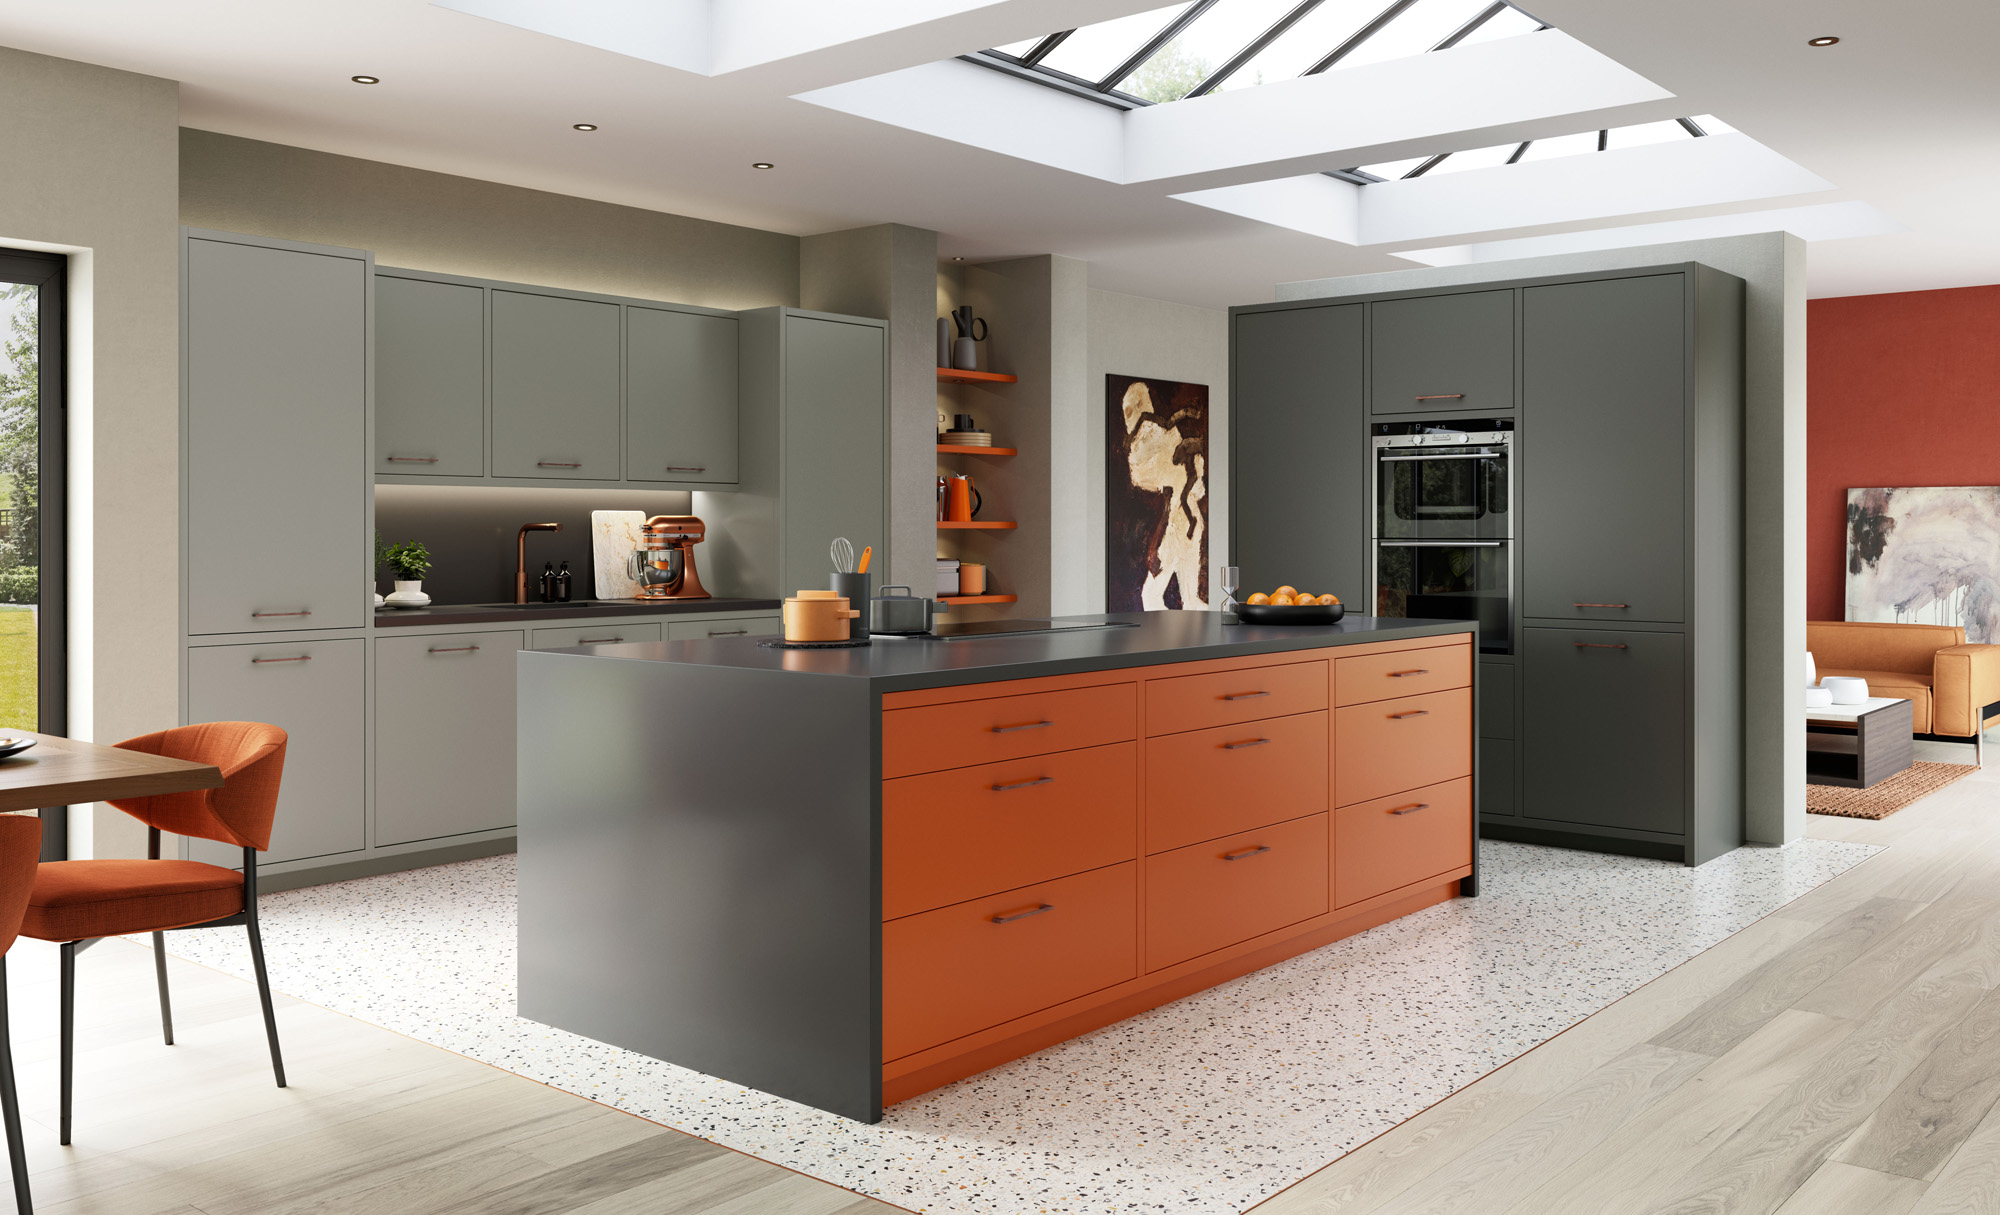 Modern Contemporary Zola Matte Painted Kitchen in Zingy Orange, Dust Grey & Graphite